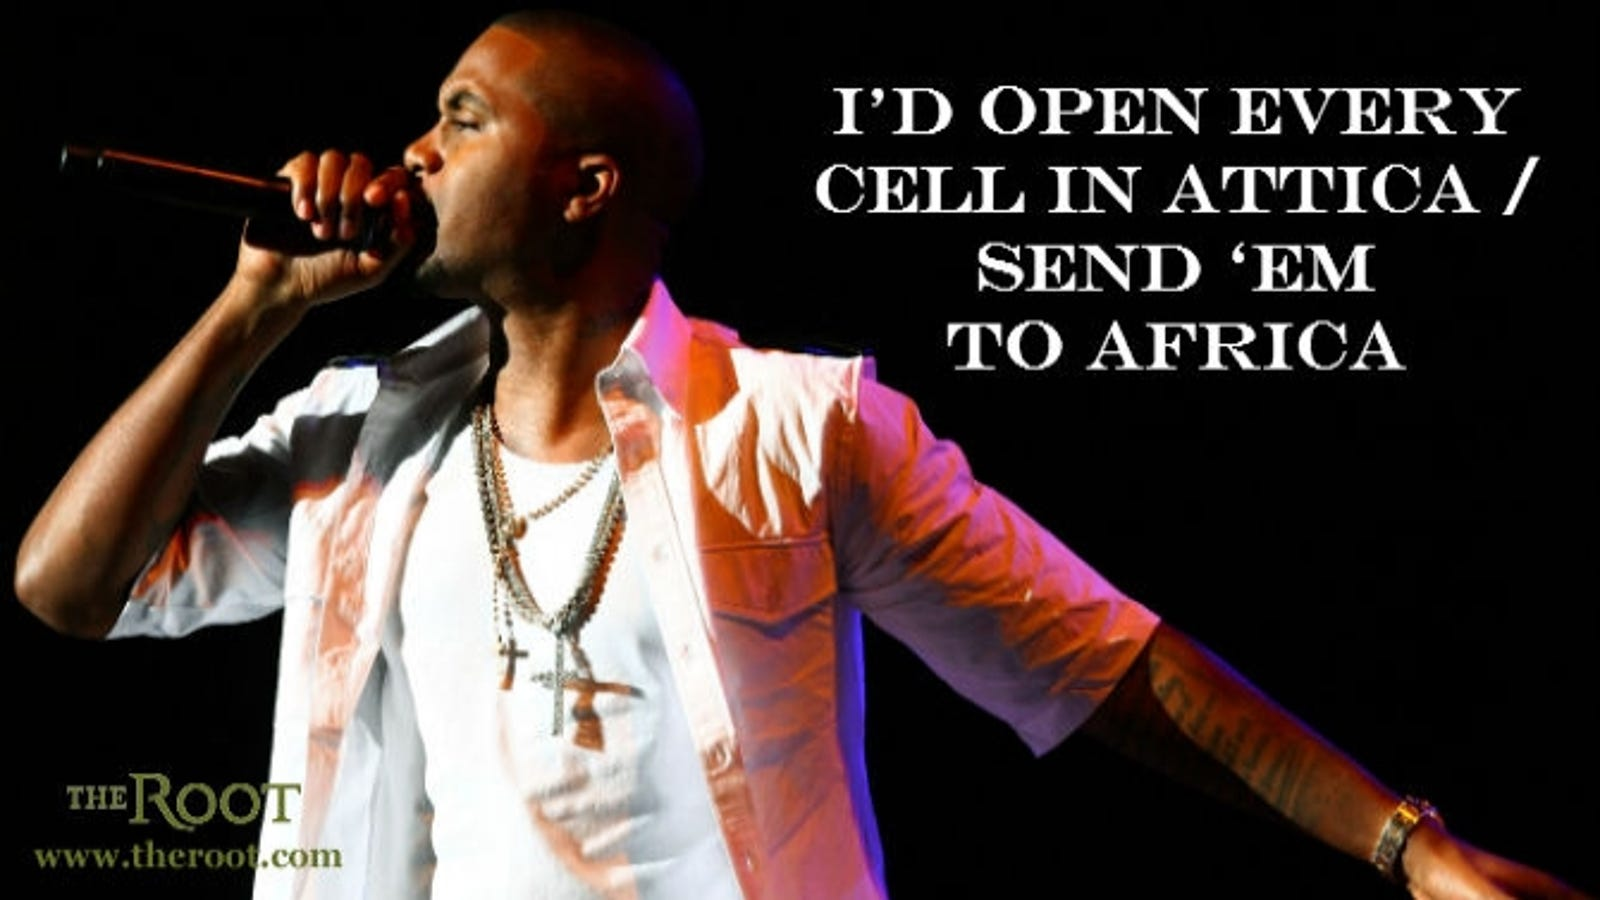 11 Dope Hip-Hop Lyrics That Give Props to Africa